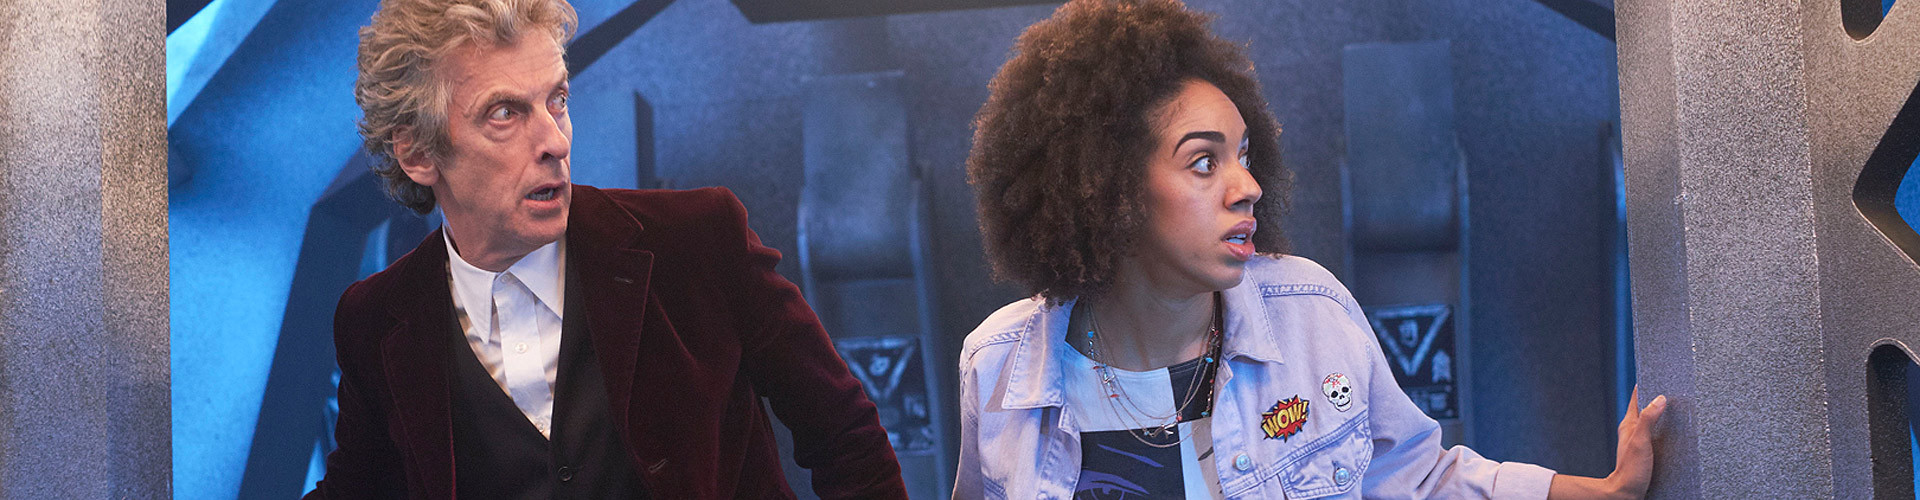 Doctor-Who-s10-interviews-banner-1920x520.jpg